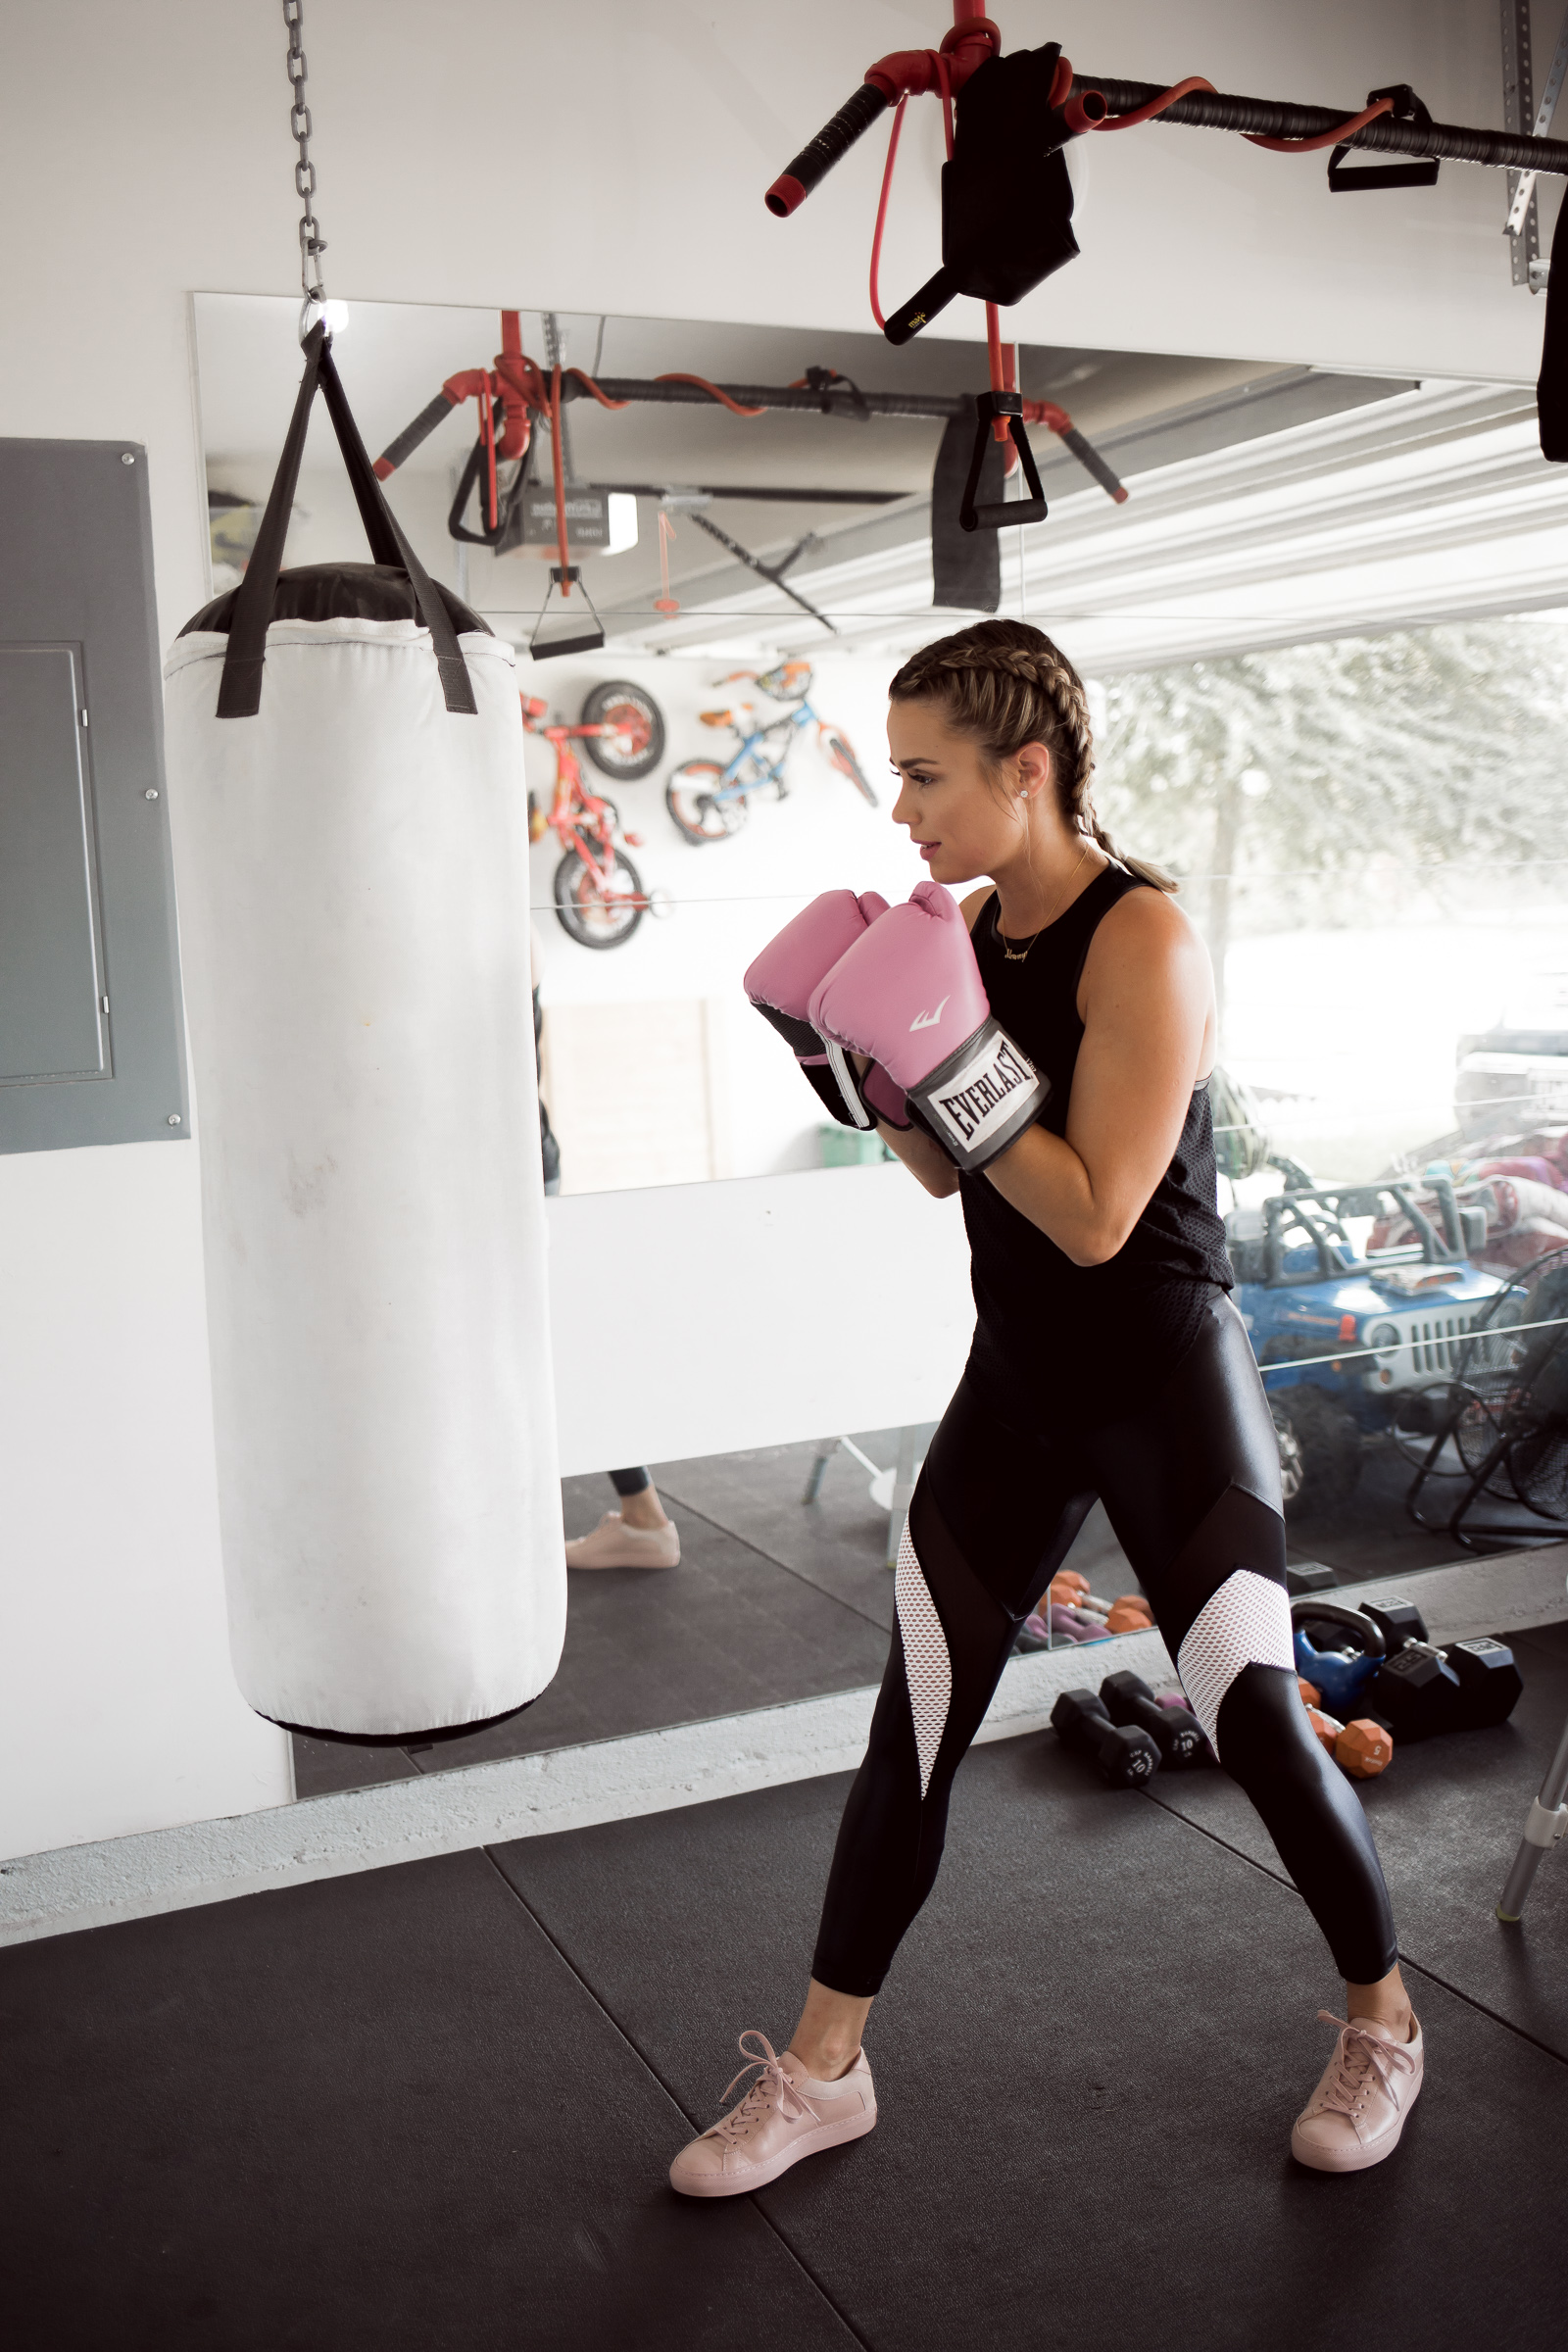 Houston fashion blogger Uptown with Elly Brown wears Koral workout clothes